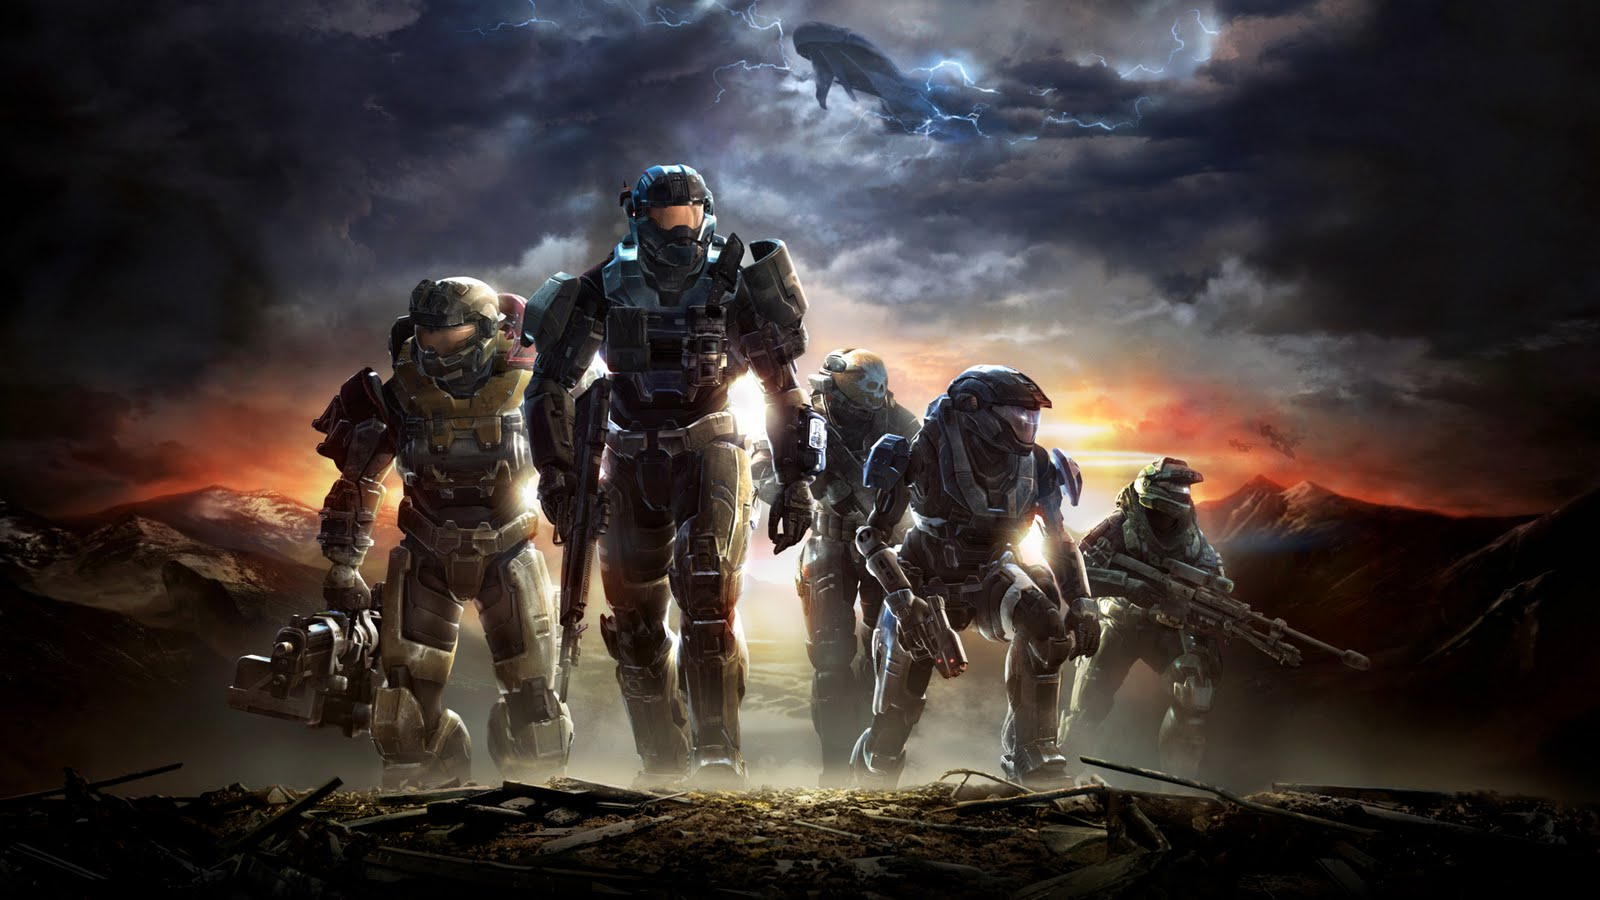 Halo 3 wallpaper 1080p Clickandseeworld is all about FunnyAmazing 1600x900